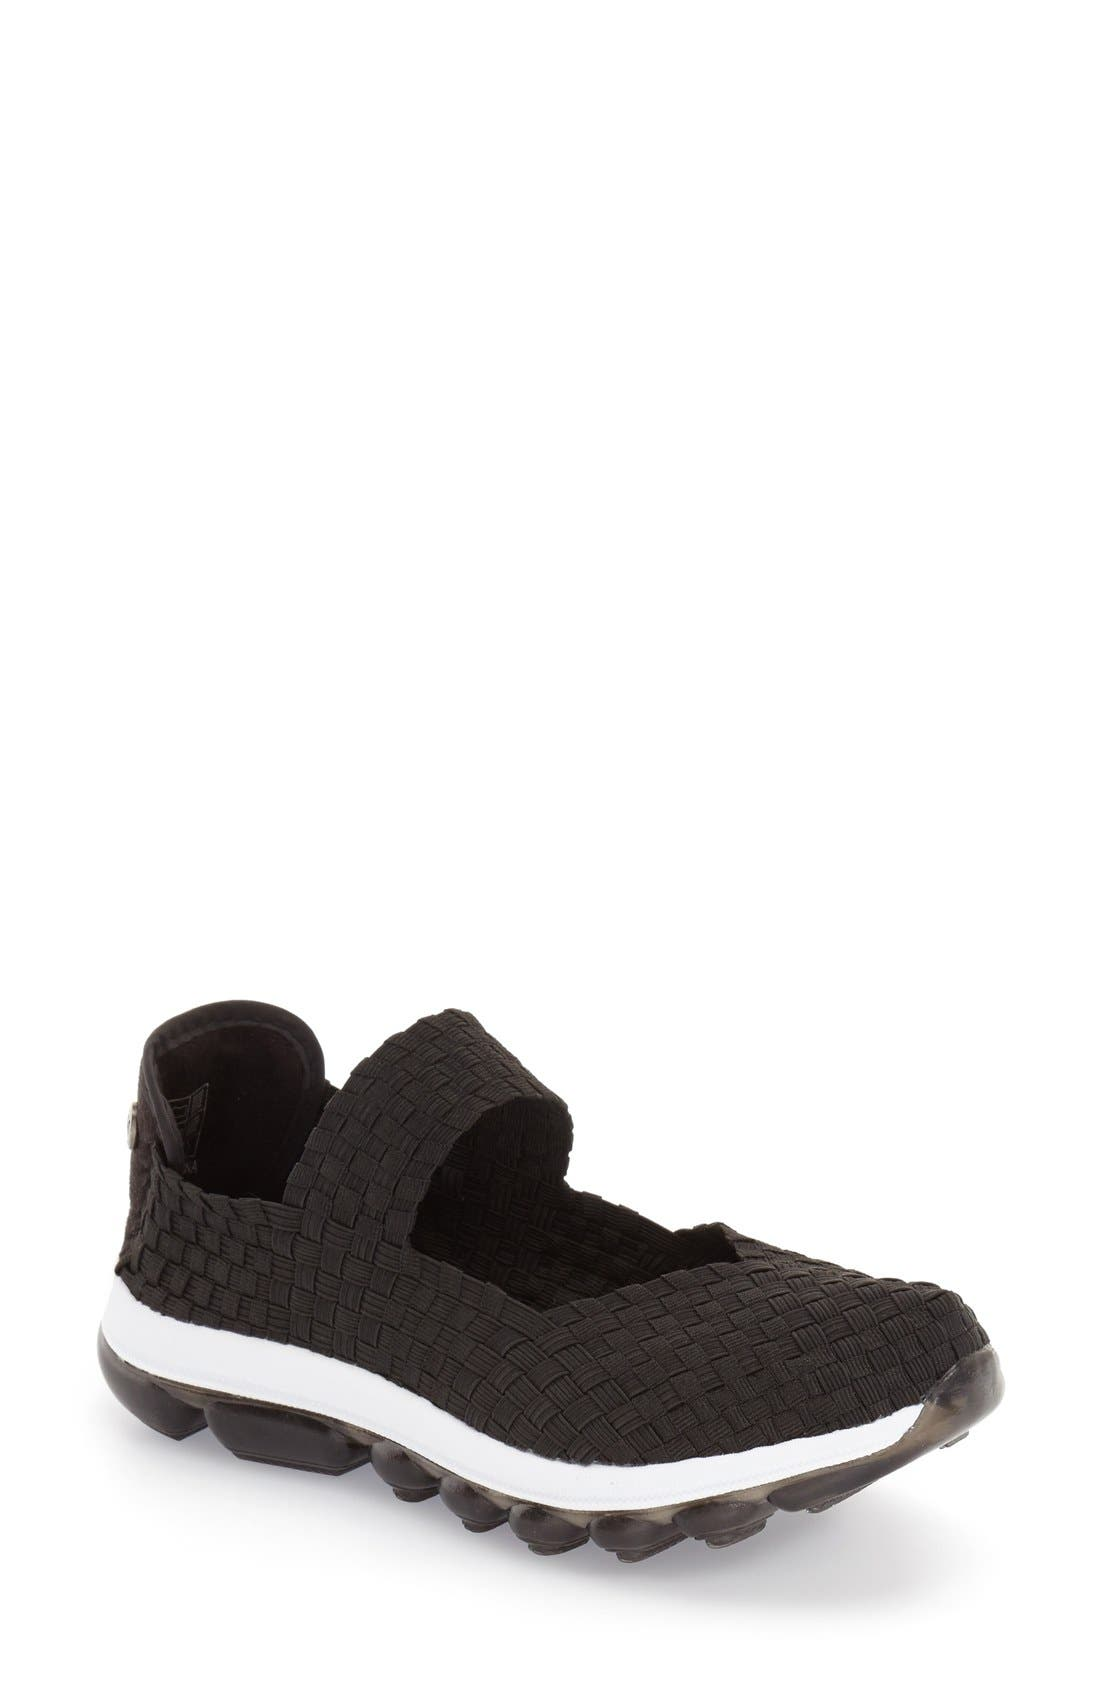 'Gummies Charm' Stretch Woven Slip-On Sneaker,                             Main thumbnail 1, color,                             001